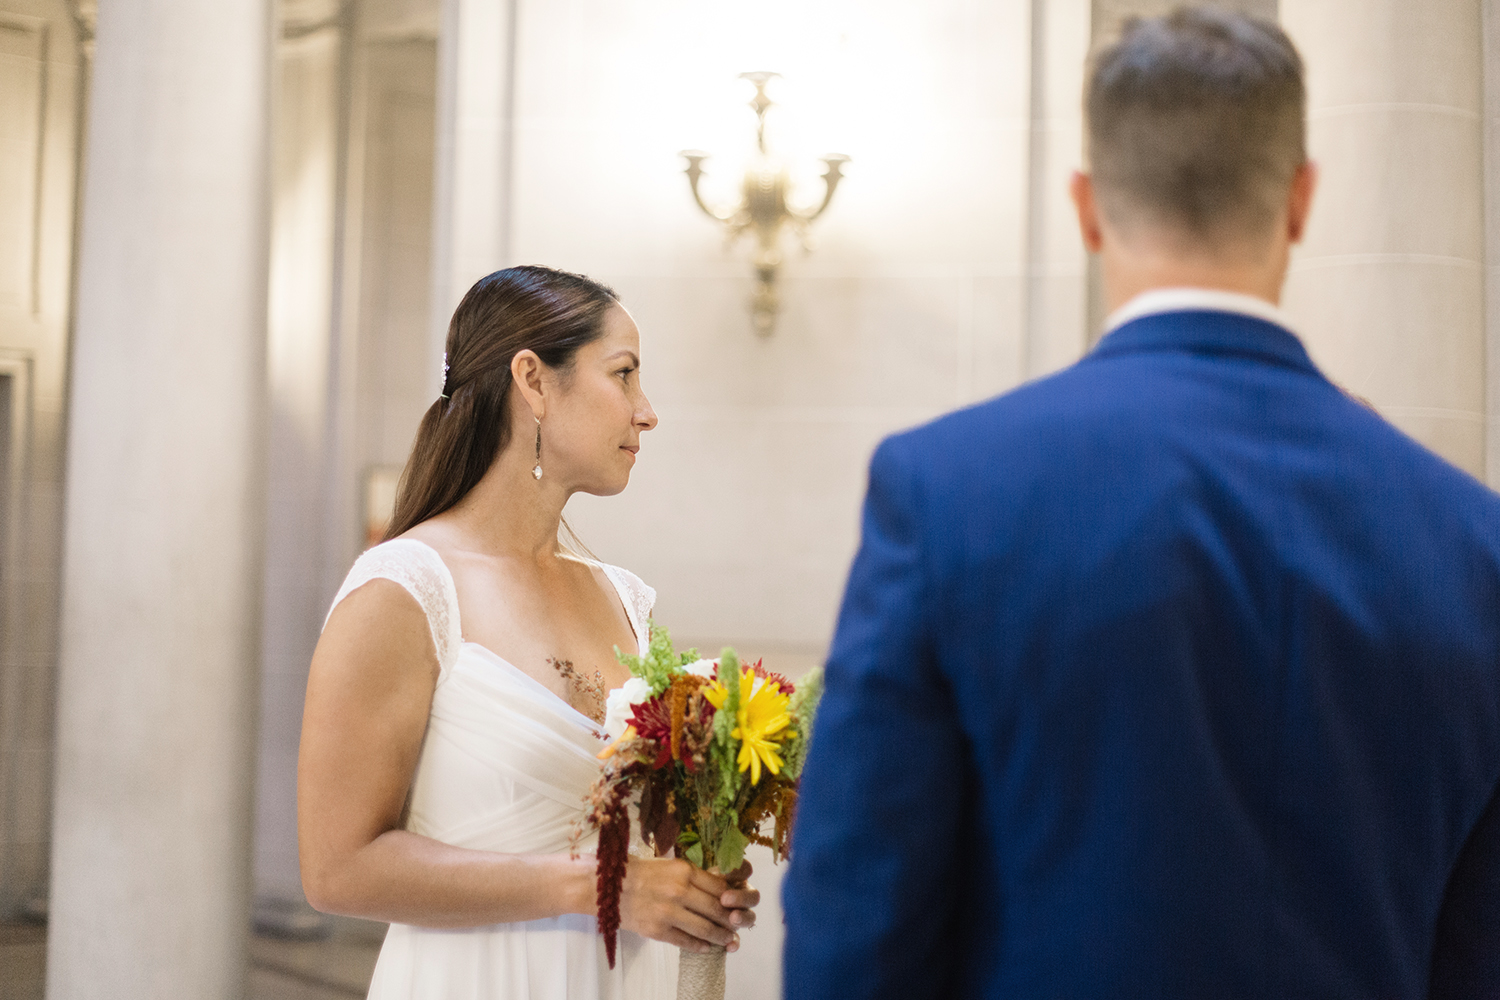 Bride and groom during their ceremony in San Francisco City Hall.